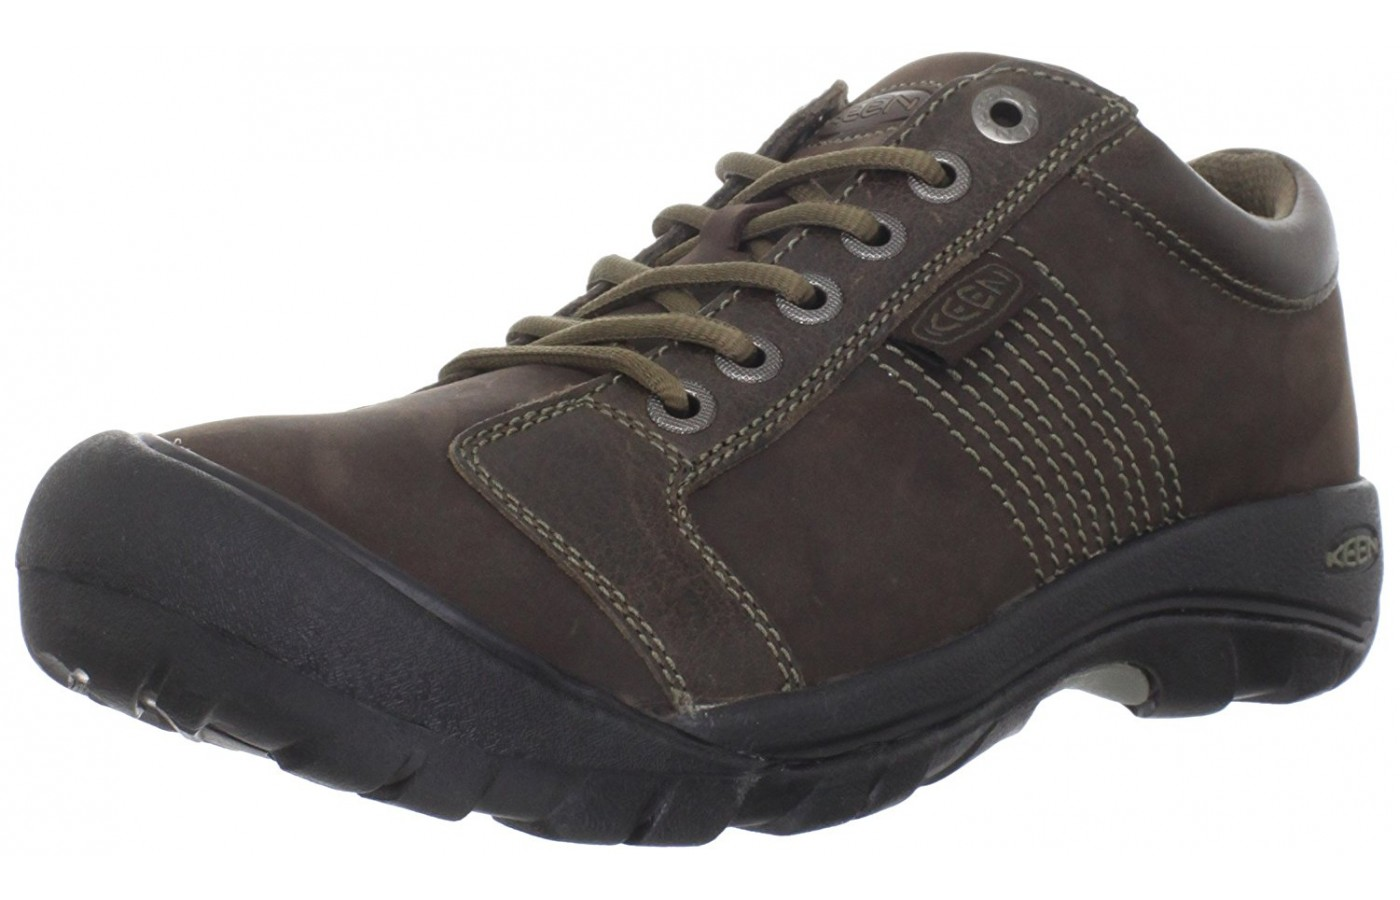 The Keen Austin is a casual shoe to wear everyday.